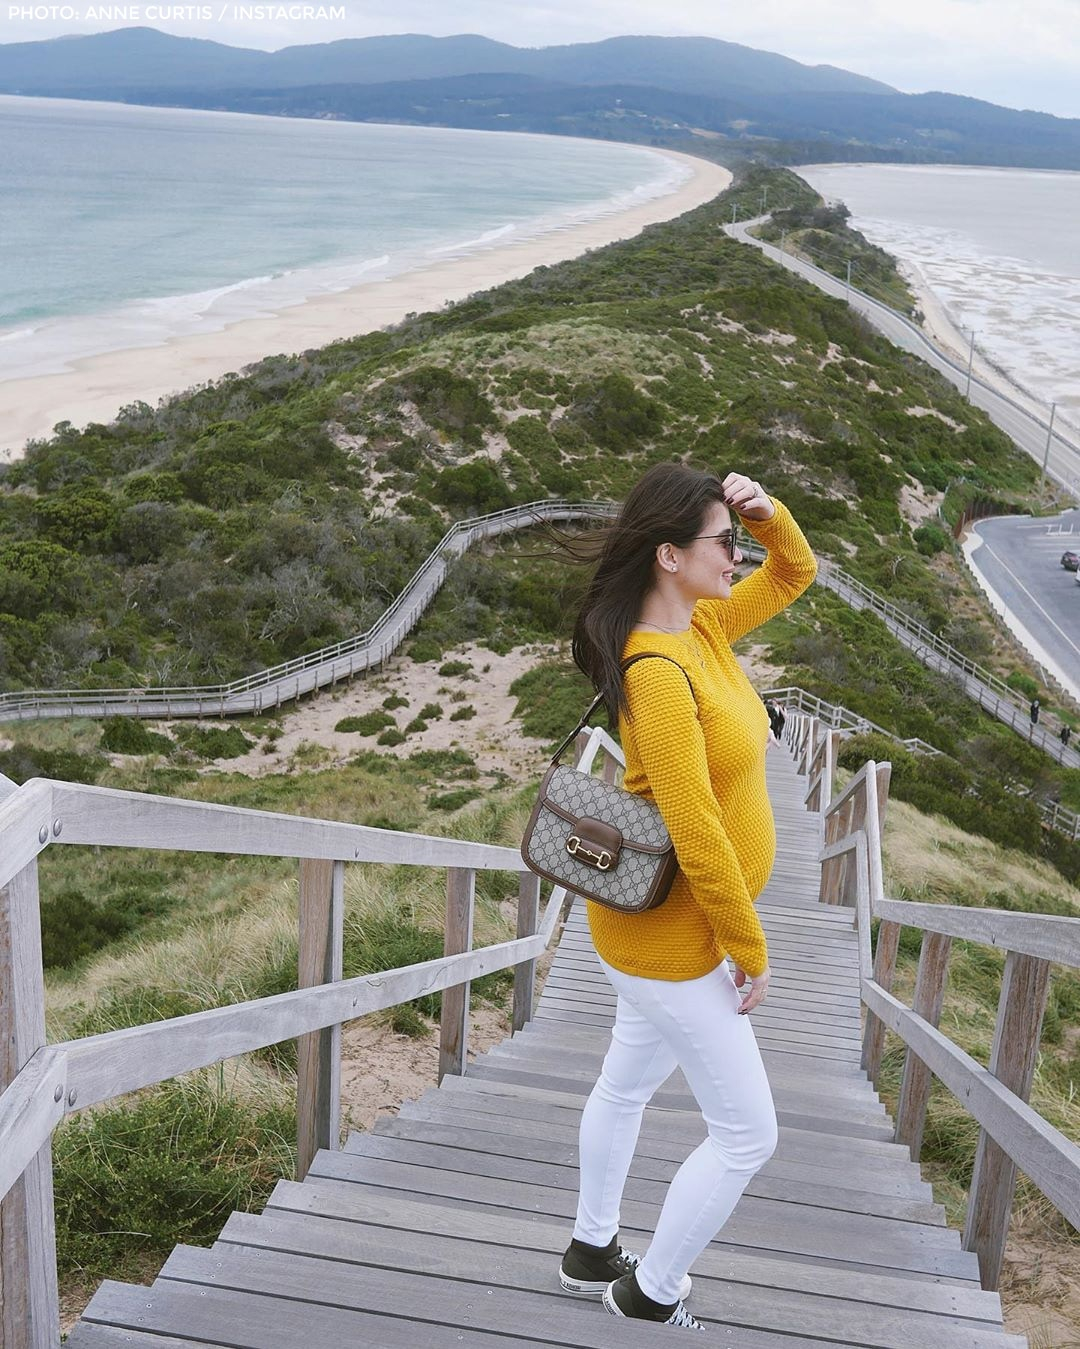 Anne and Erwan enjoy the sights in Australia 2